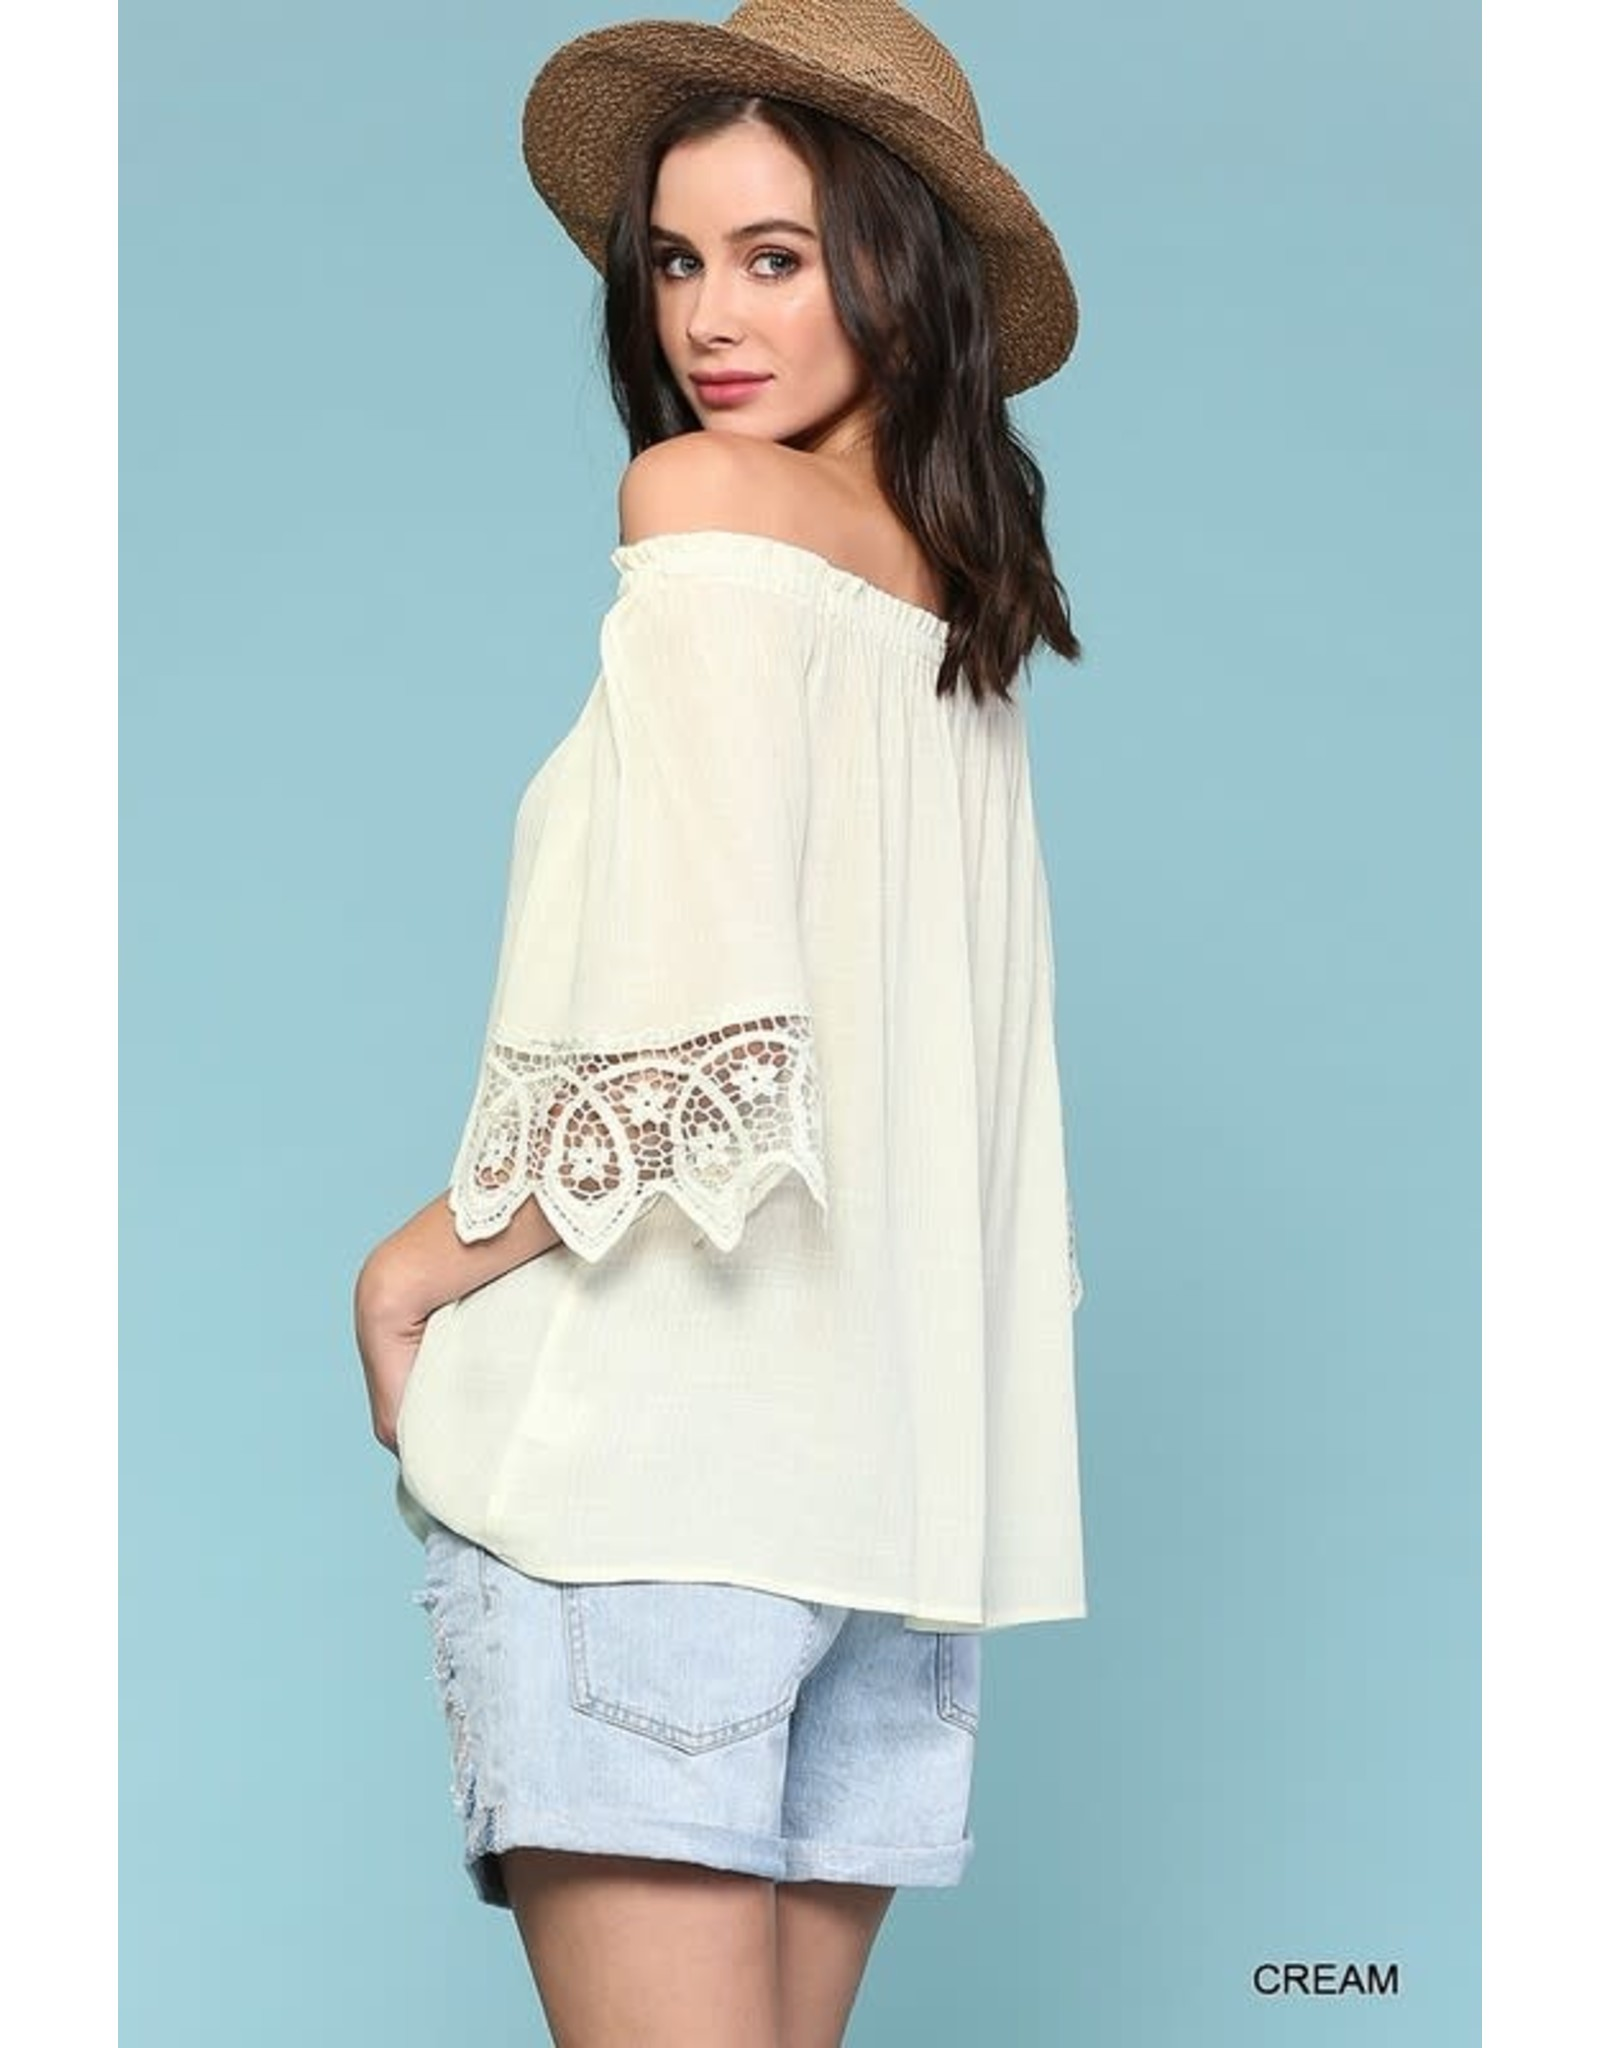 GIGIO CREAM OFF SHOULDER BELL SLEEVE BUTTON DOWN TOP WITH LACE TRIM